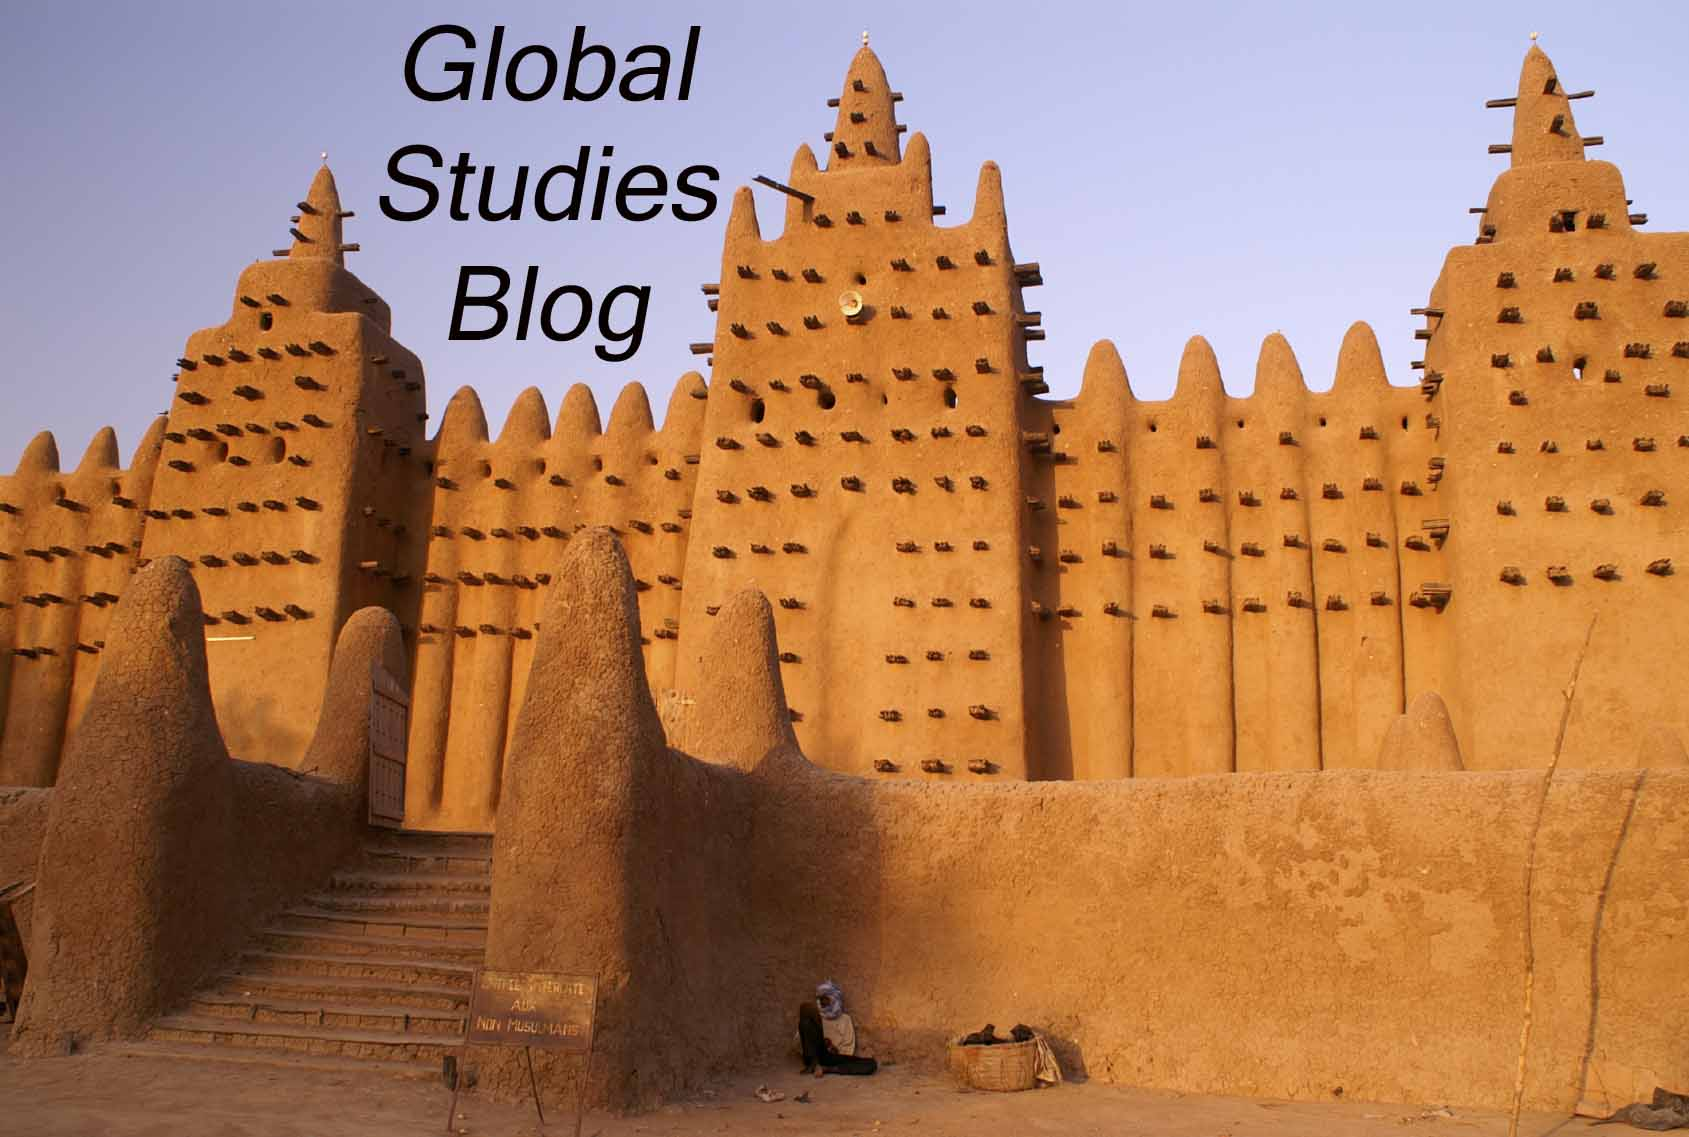 Global Studies Blog